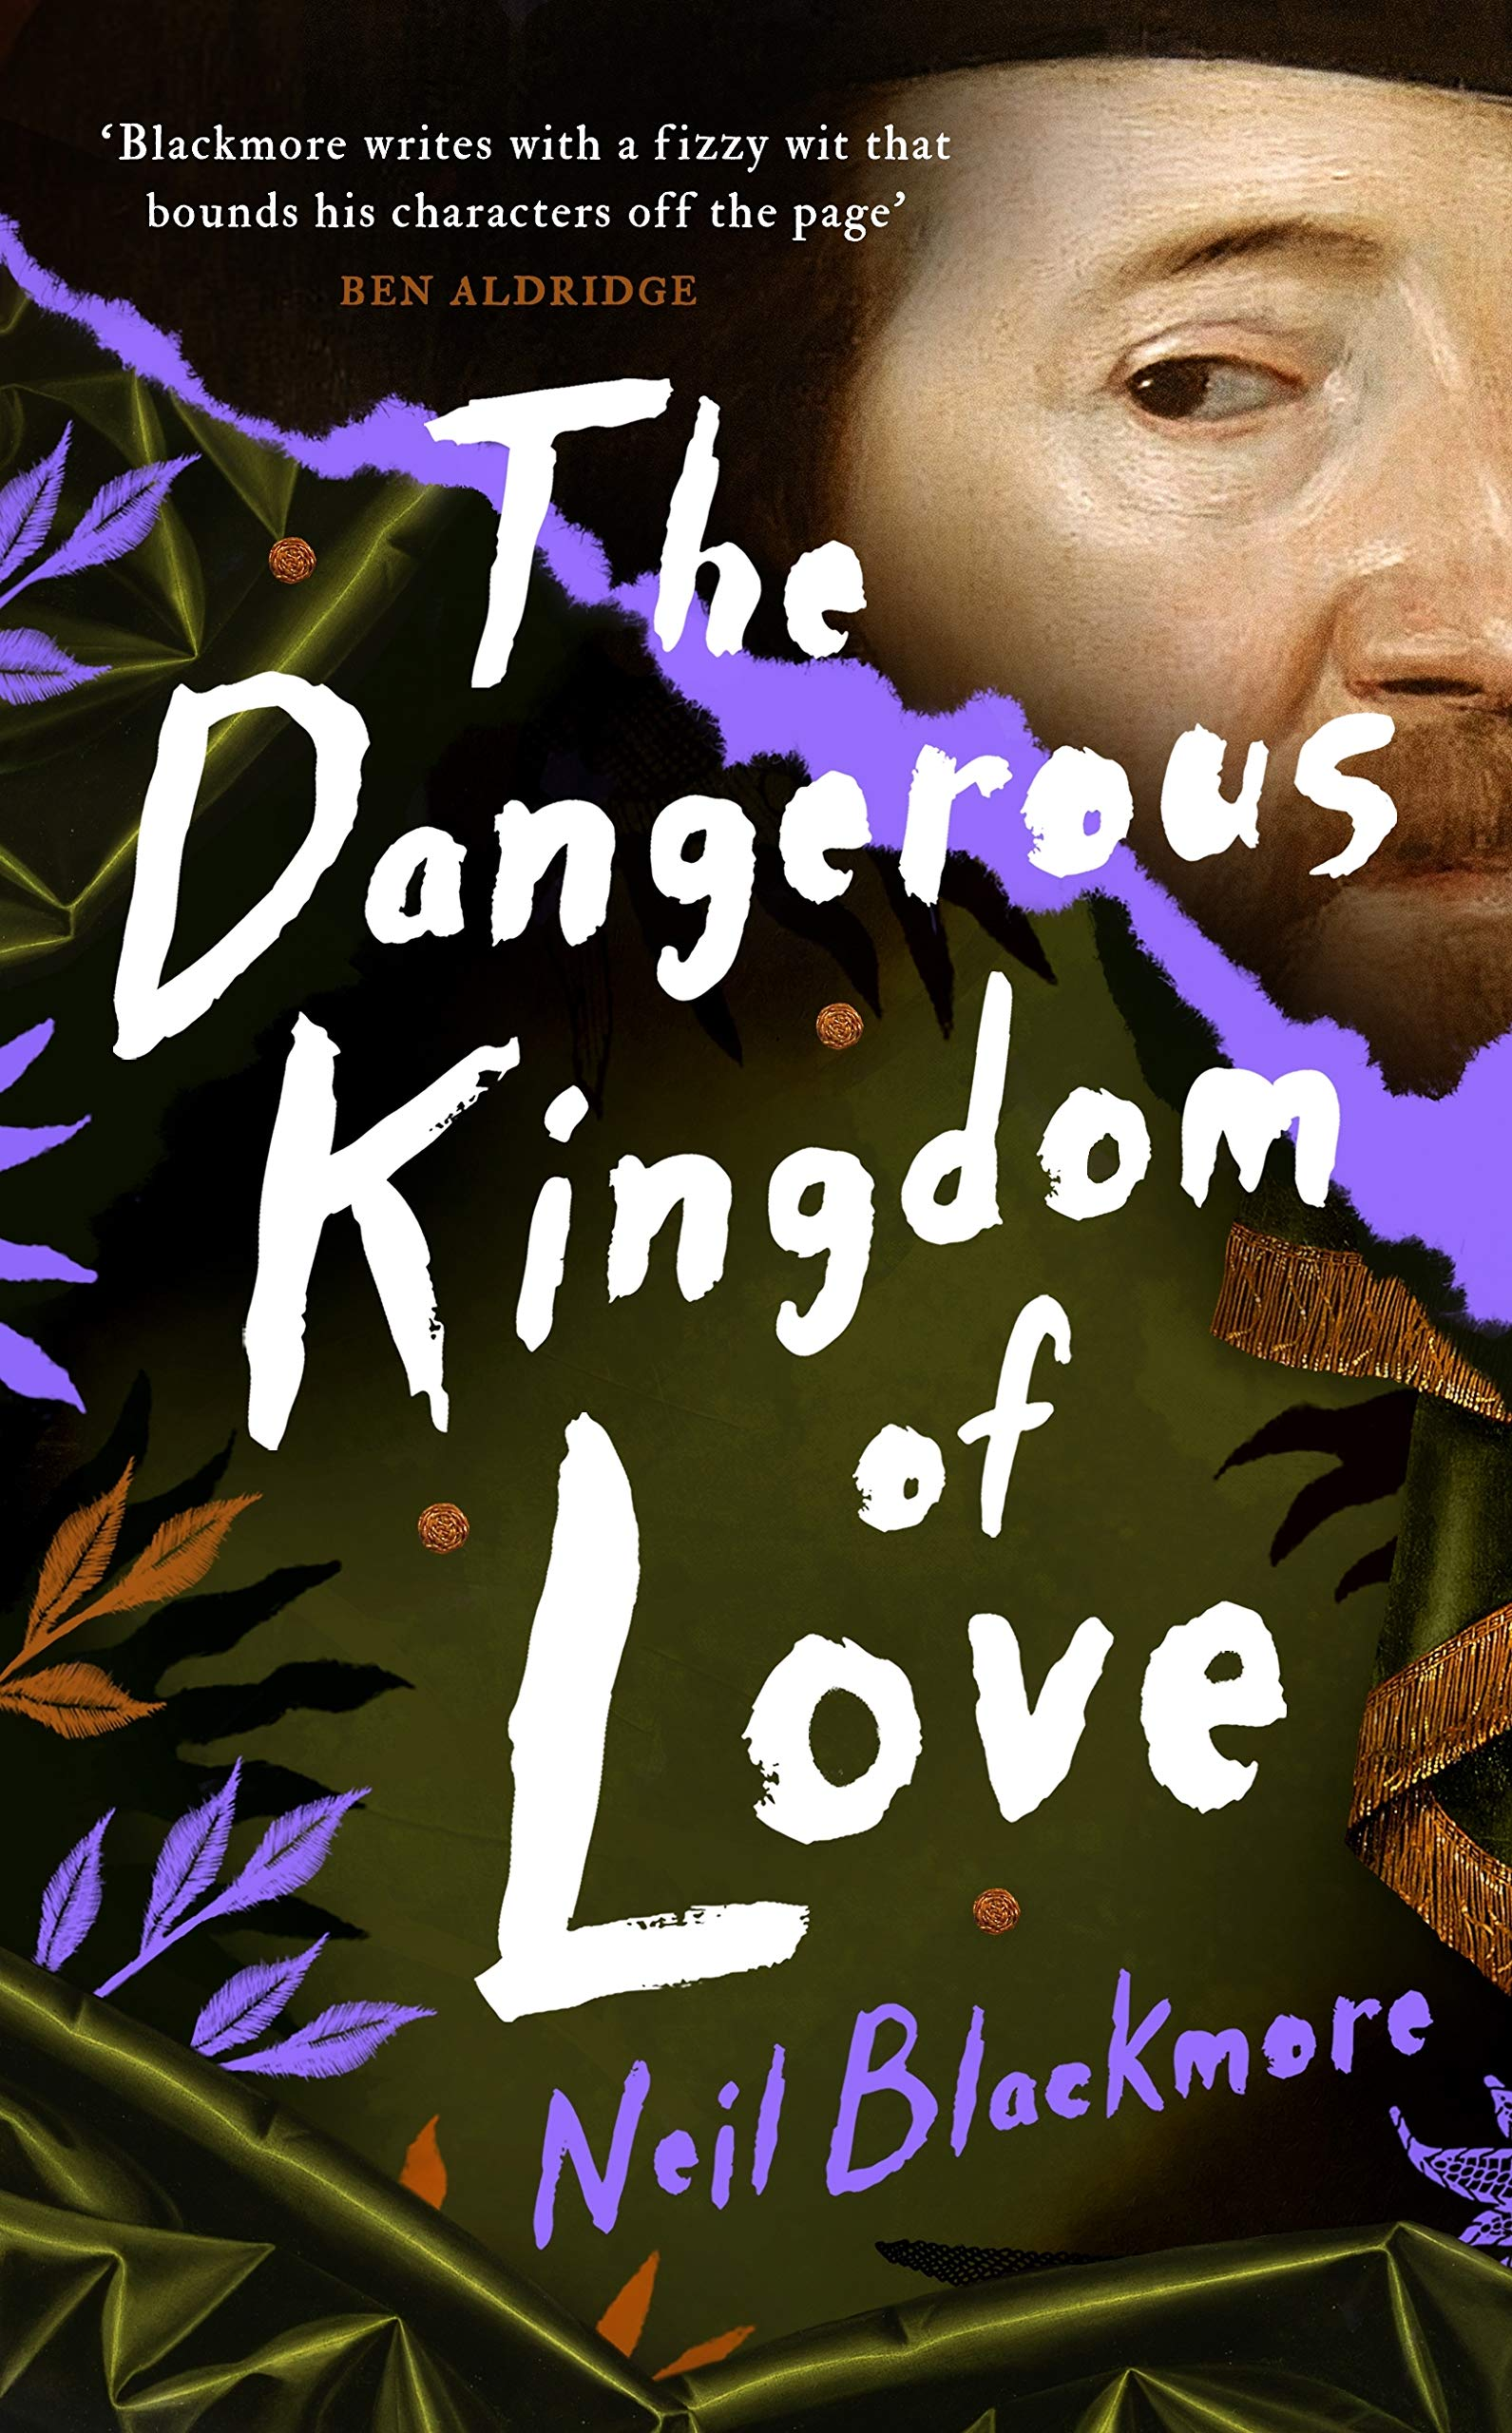 The Dangerous Kingdom of Love by Neil Blackmore |